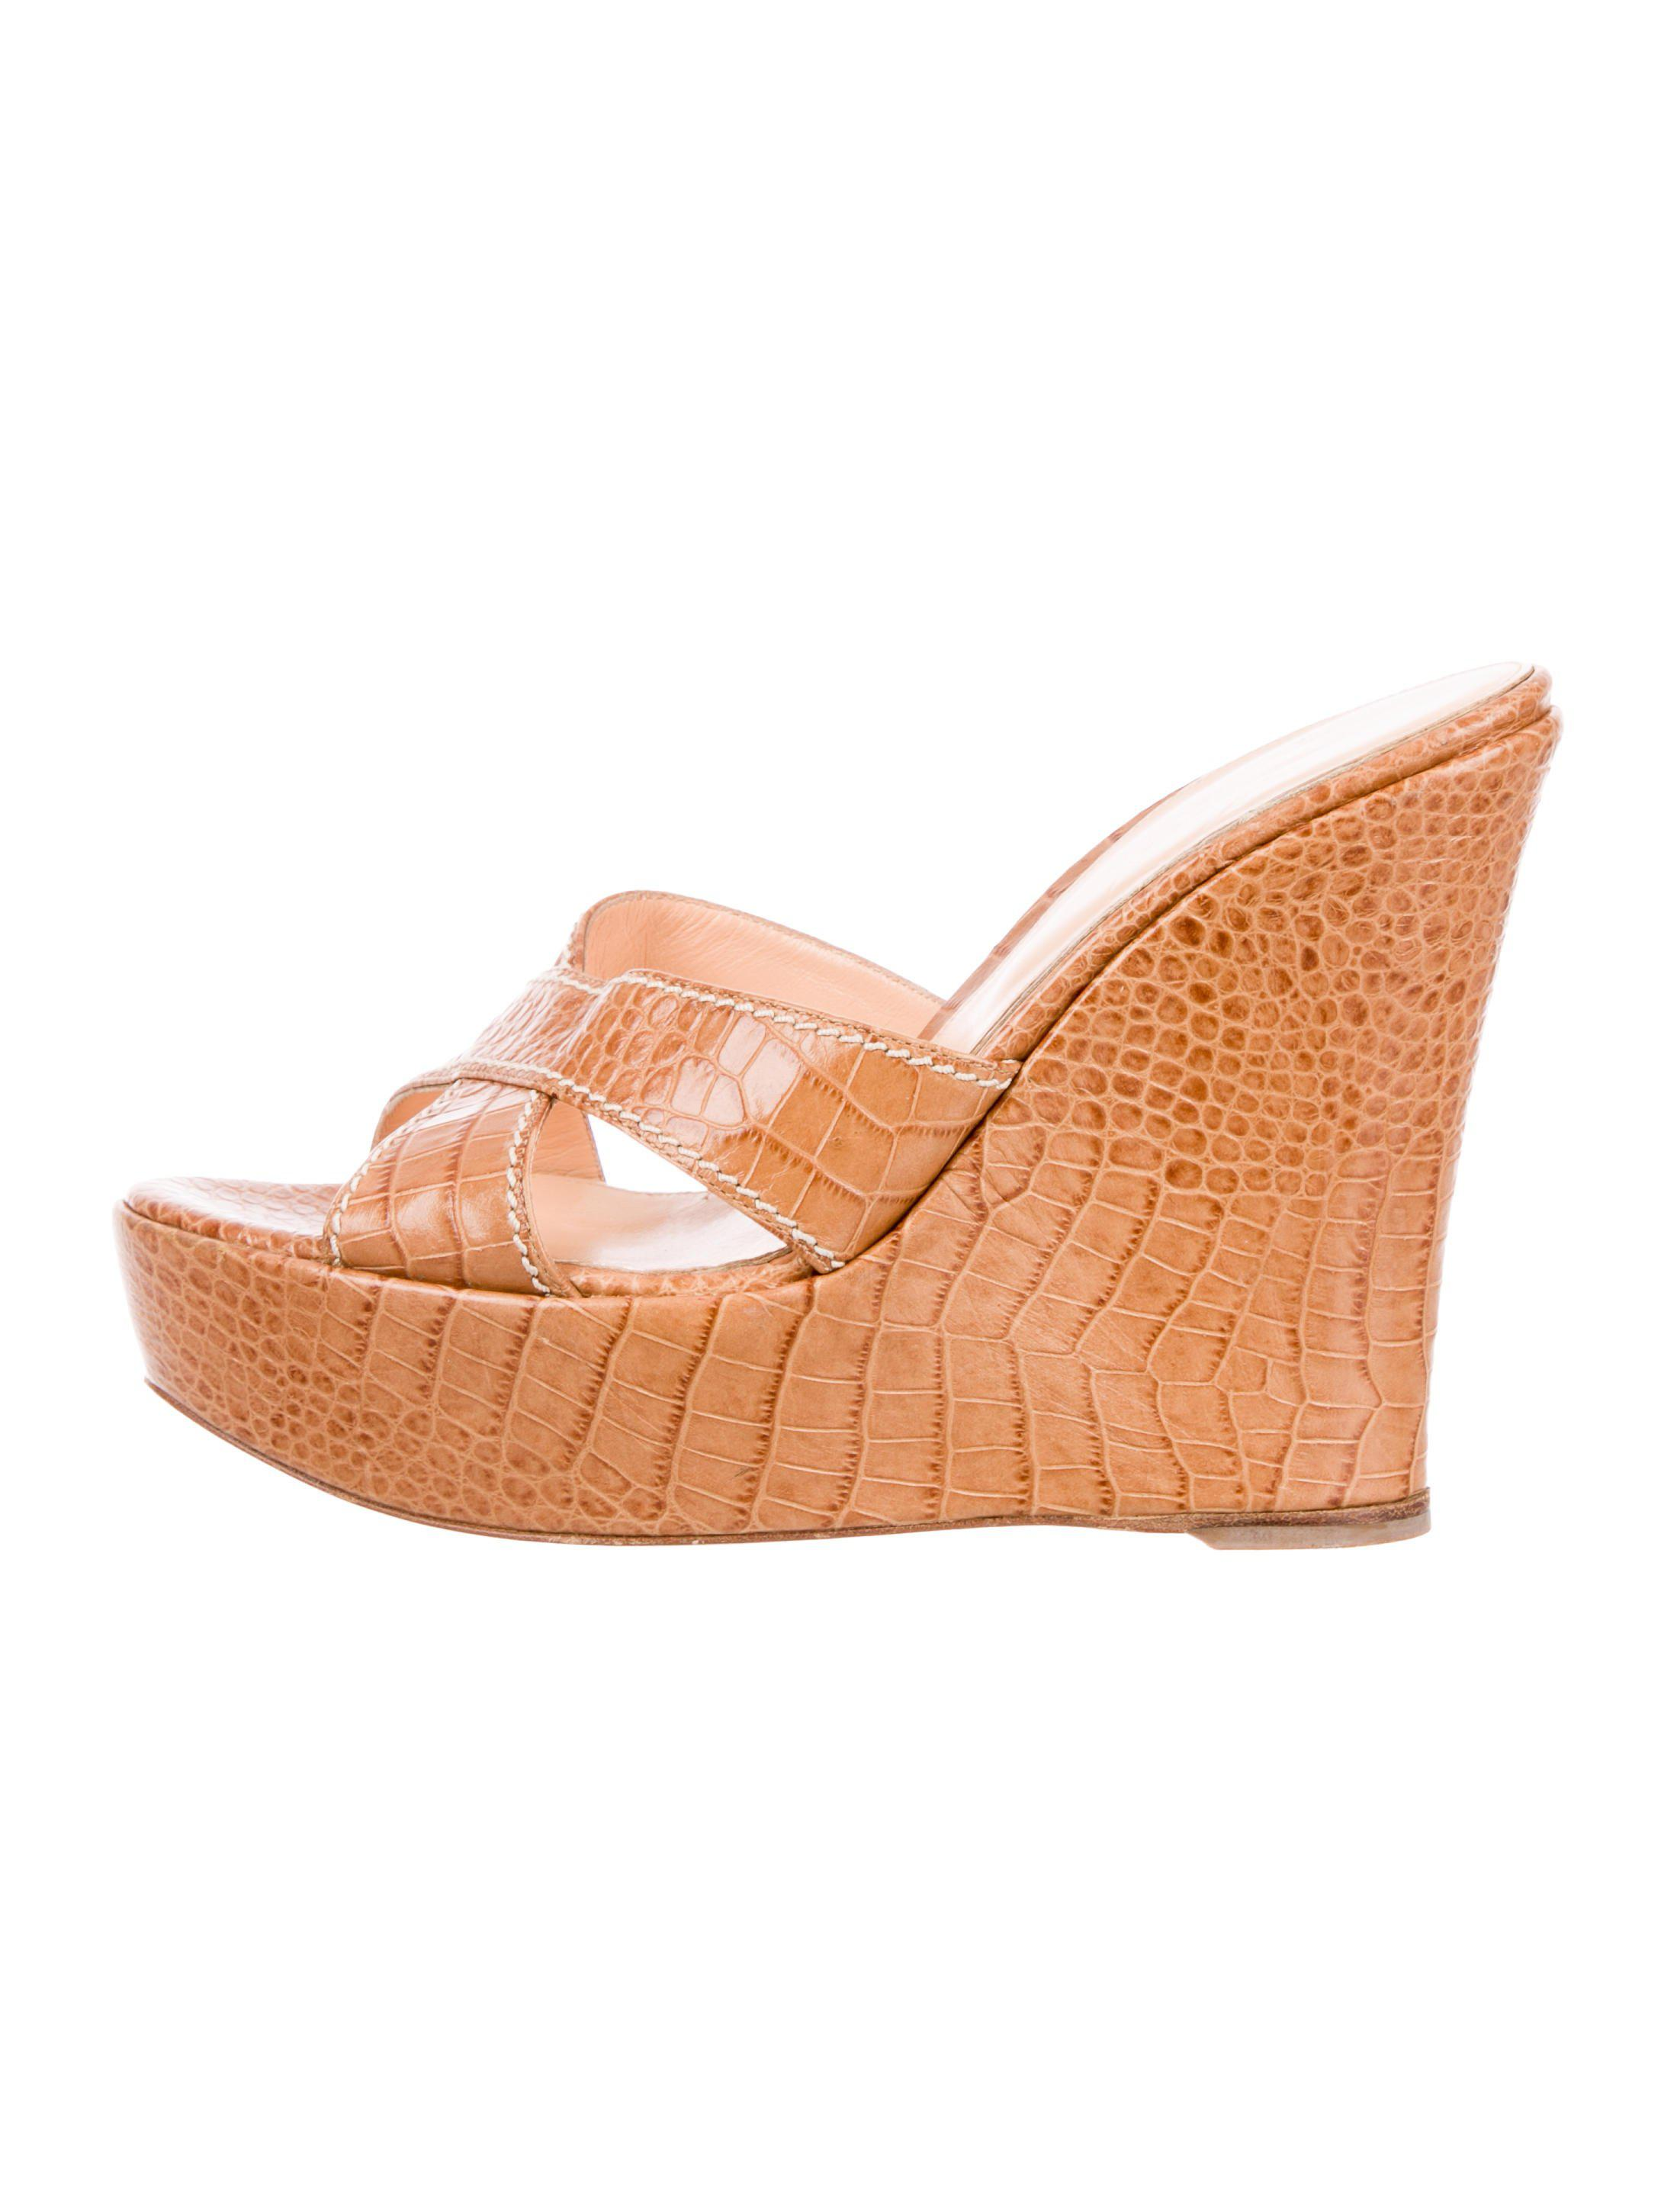 clearance clearance pre order online Sergio Rossi Embossed Platform Wedges shipping discount authentic 2015 online 7LljToLQ